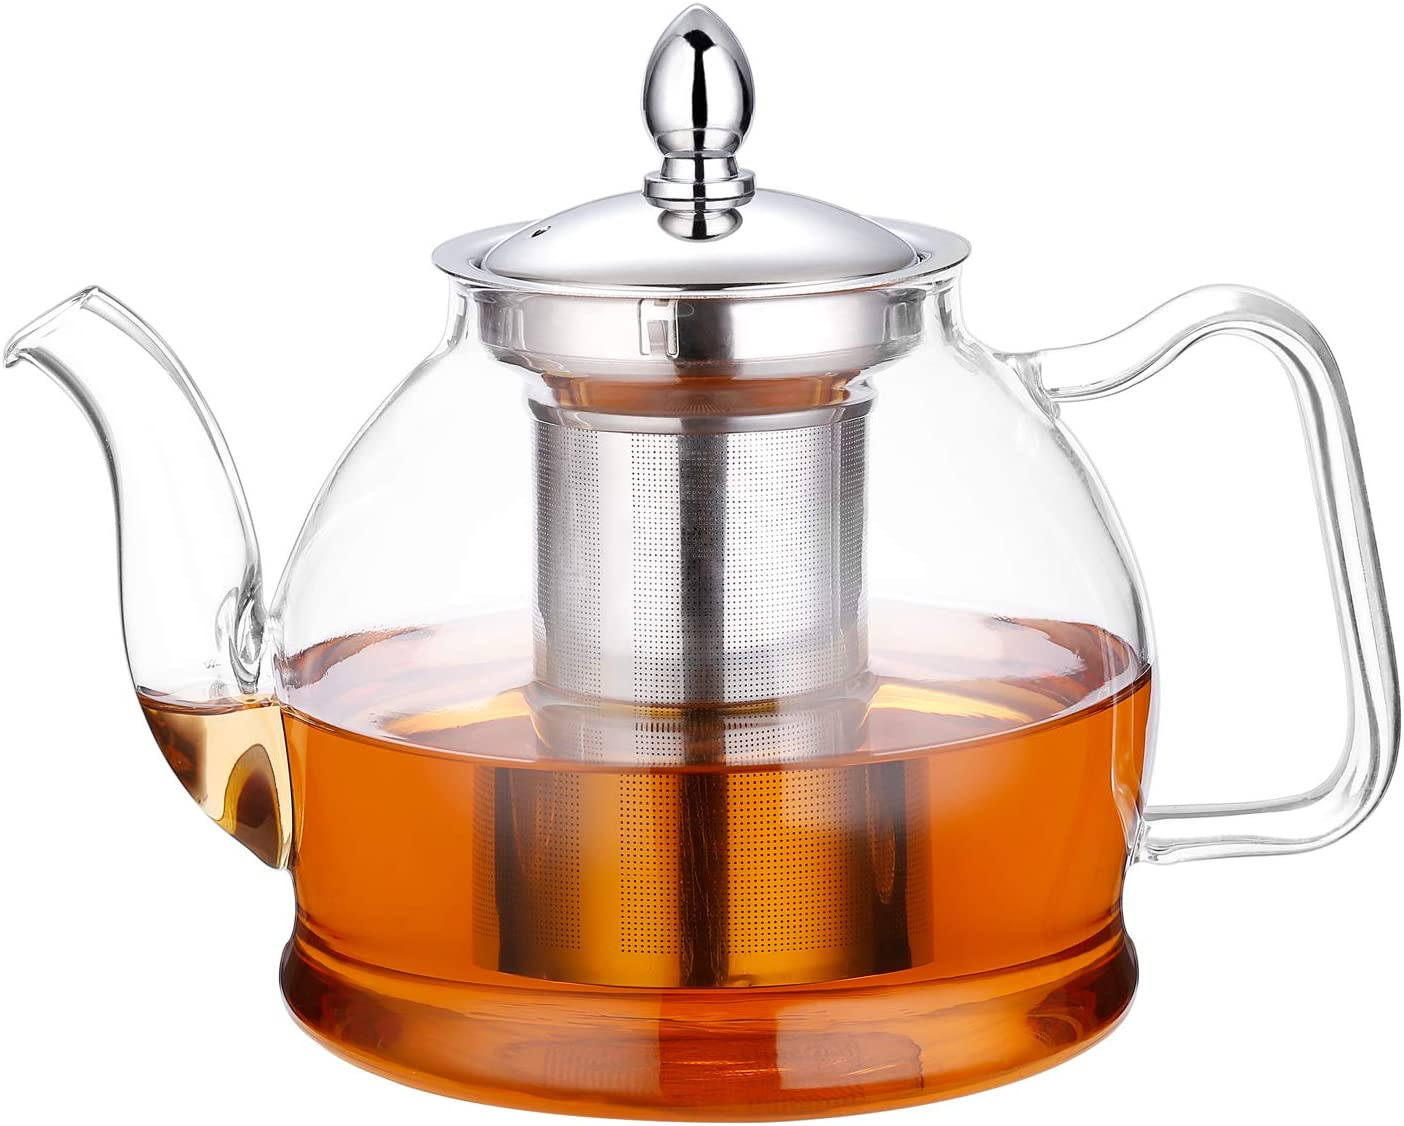 Hiware Glass Teapot Kettle Removable strainer